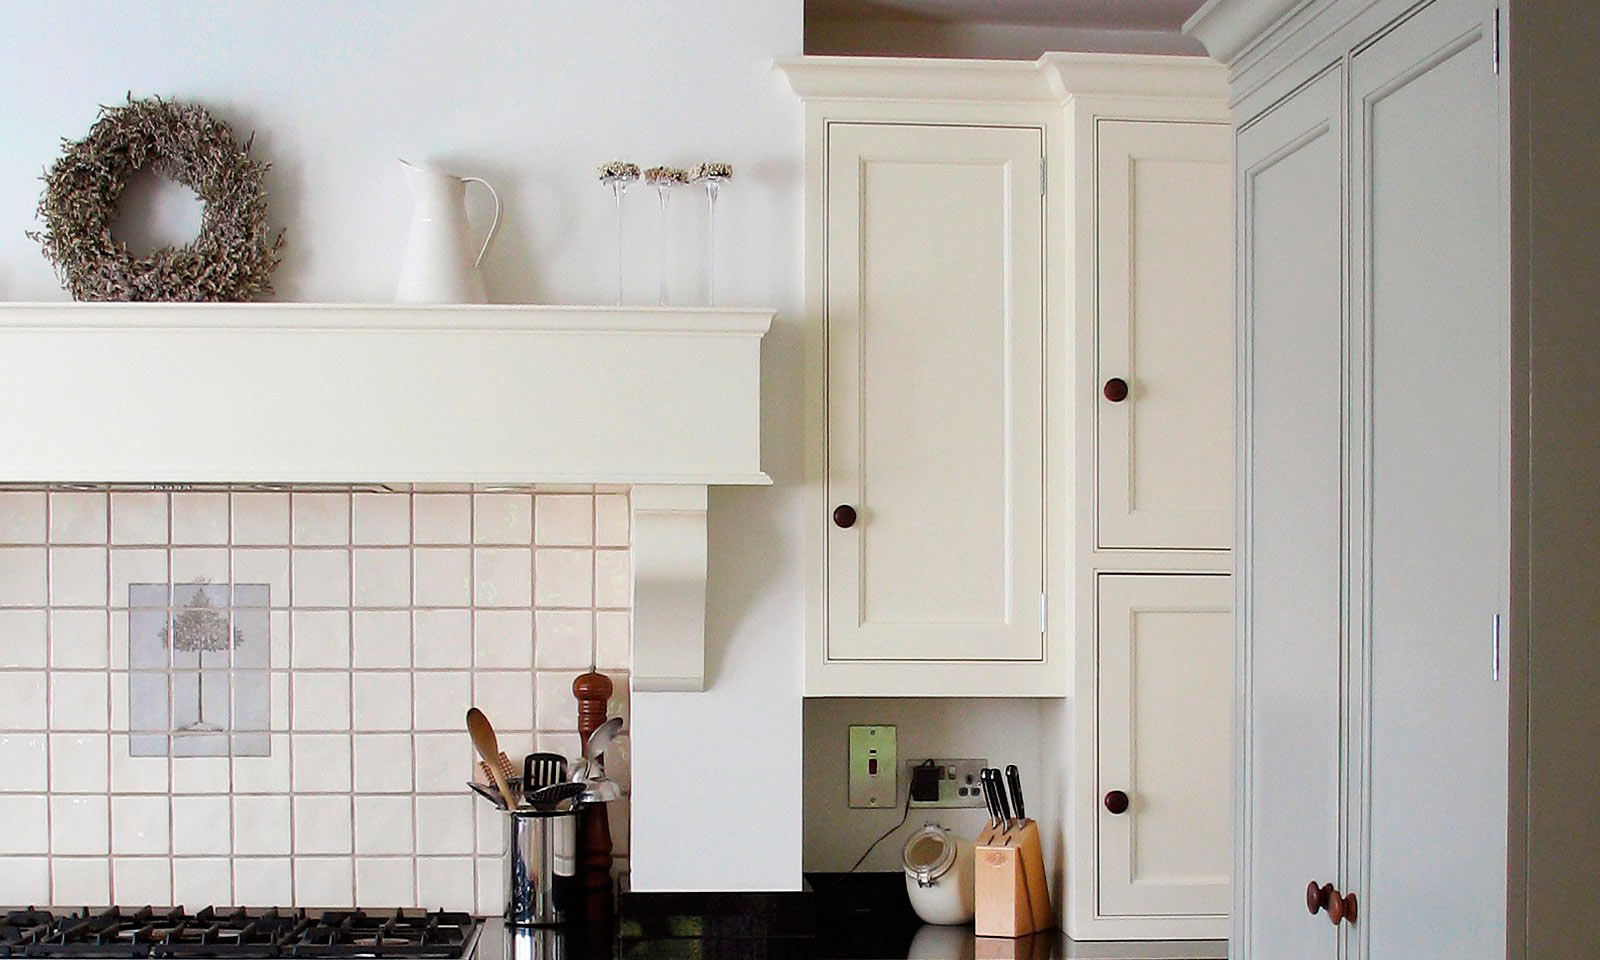 javascript:; Otford. A classic handmade, hand-painted, Shaker style kitchen, installed in a traditional farmhouse and featuring a built in Bang & Olufsen music system. A bespoke hand-crafted kitchen manufactured by the skilled cabinet makers at Mounts Hill Woodcraft.